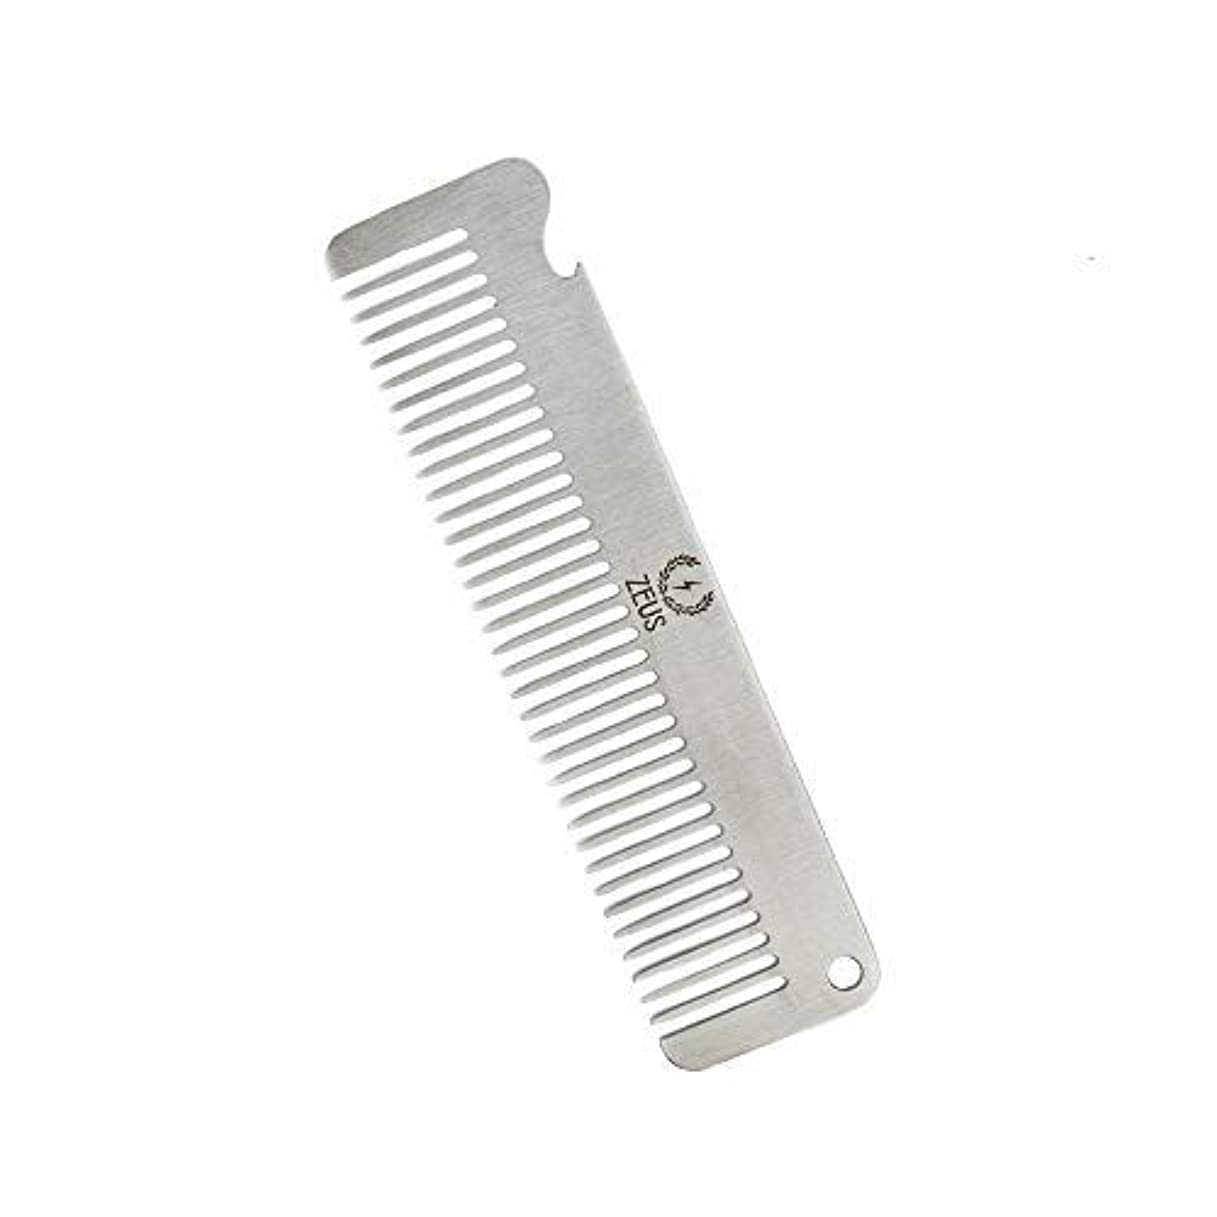 証書円形議論するZEUS Stainless Steel Comb with Bottle Opener - Beard Comb for Men! (Comb) [並行輸入品]